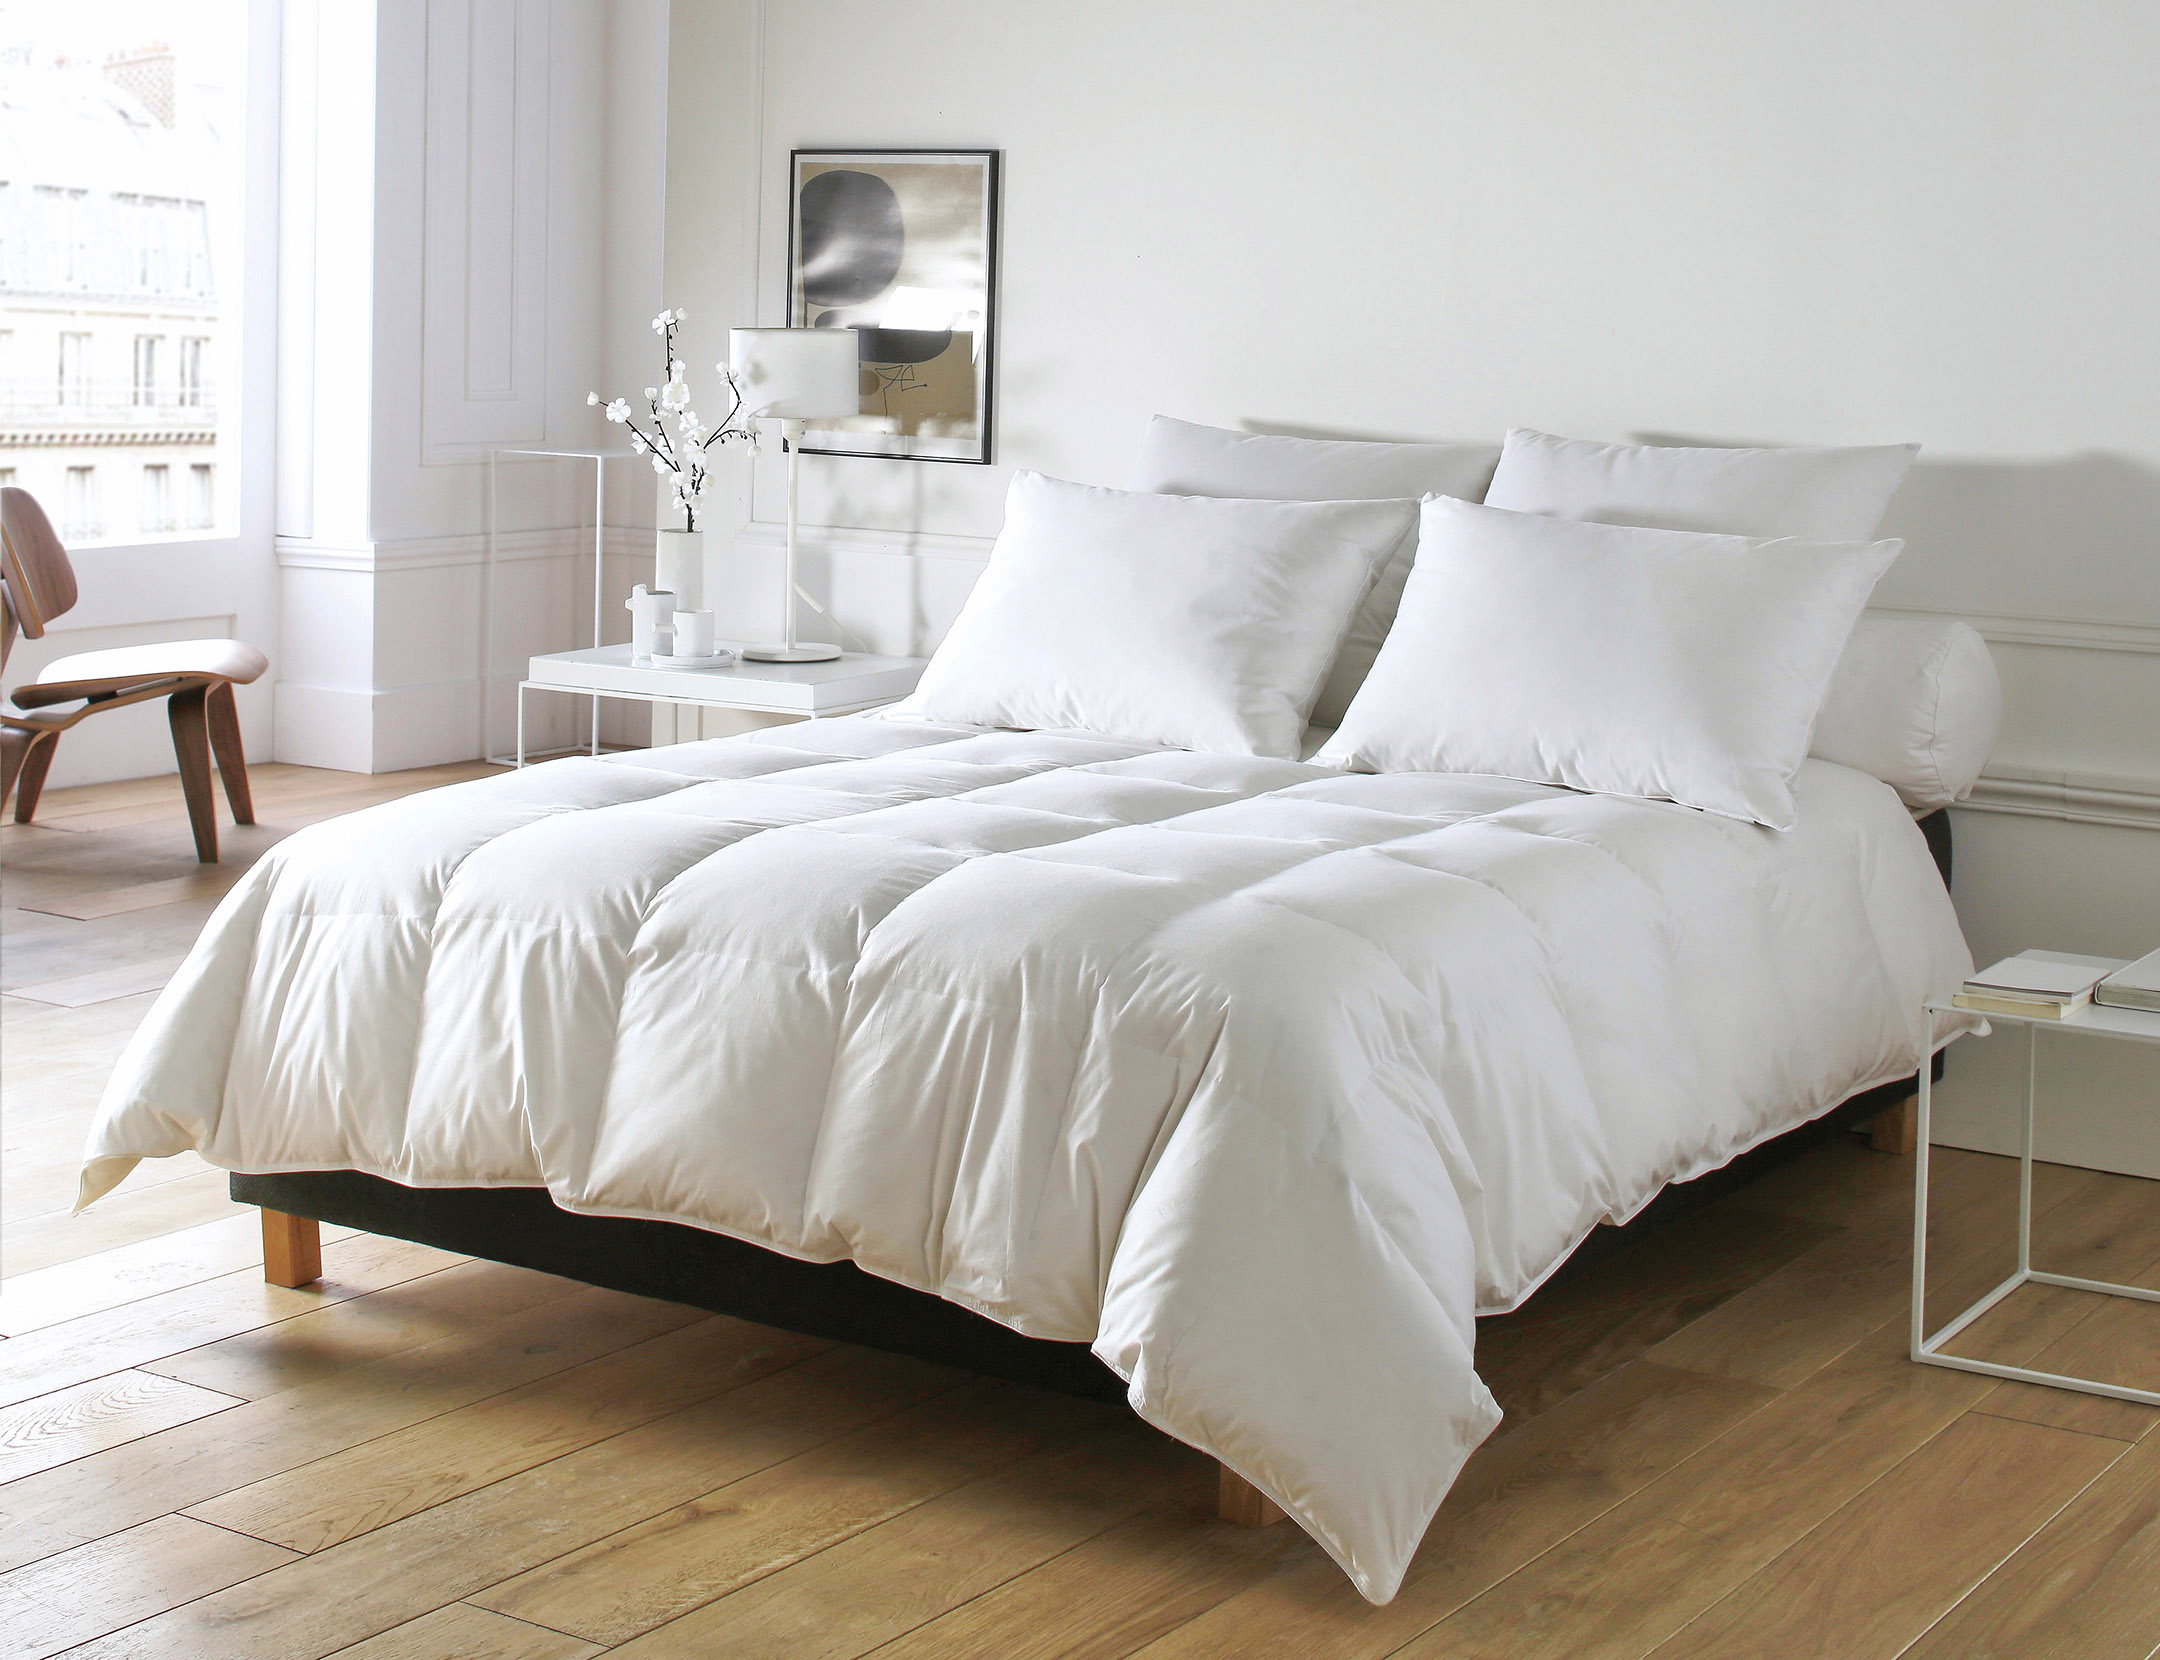 grand hotel couette naturelle la boutique blanc des vosges. Black Bedroom Furniture Sets. Home Design Ideas